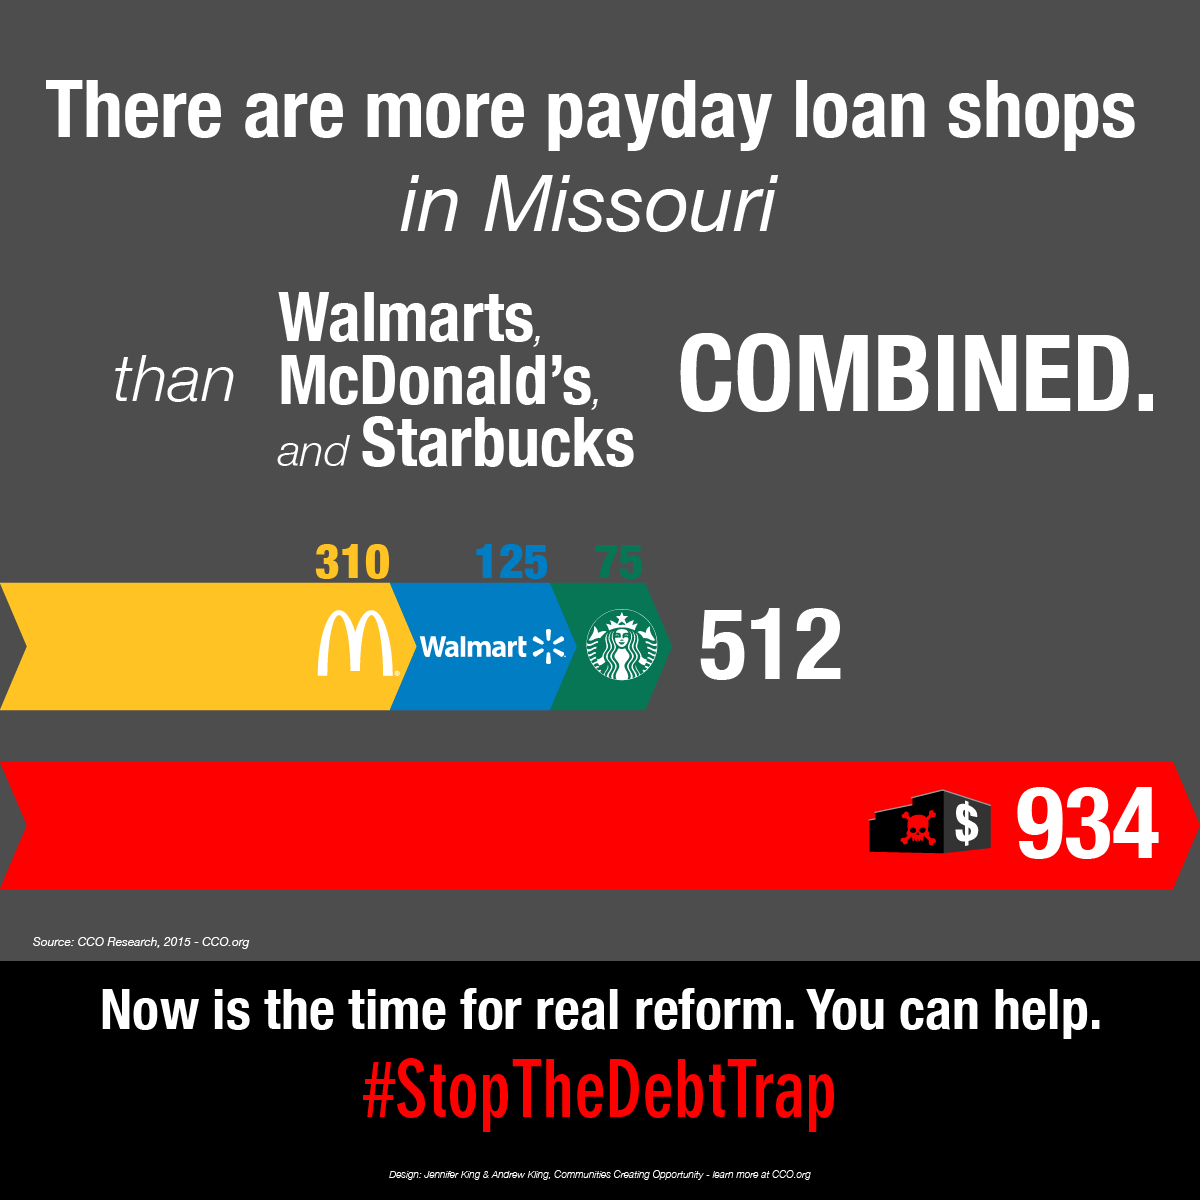 payday loans stores outnumber mcdonalds and starbucks